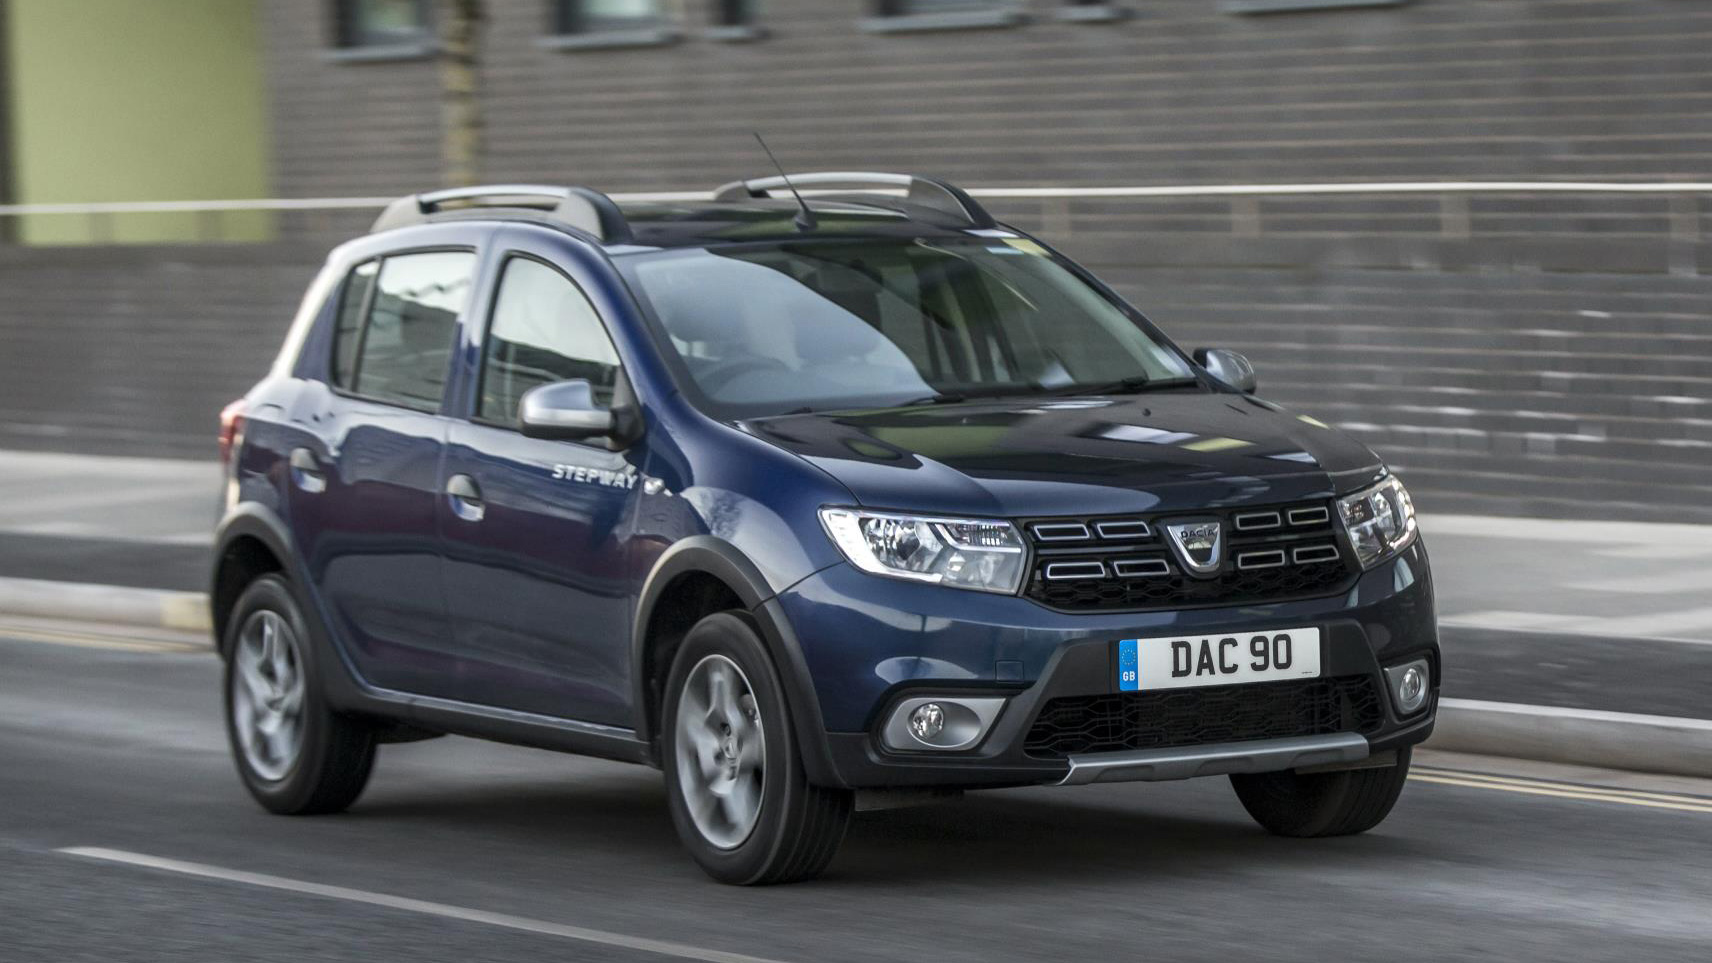 find used dacia sandero stepway cars for sale on auto trader uk. Black Bedroom Furniture Sets. Home Design Ideas